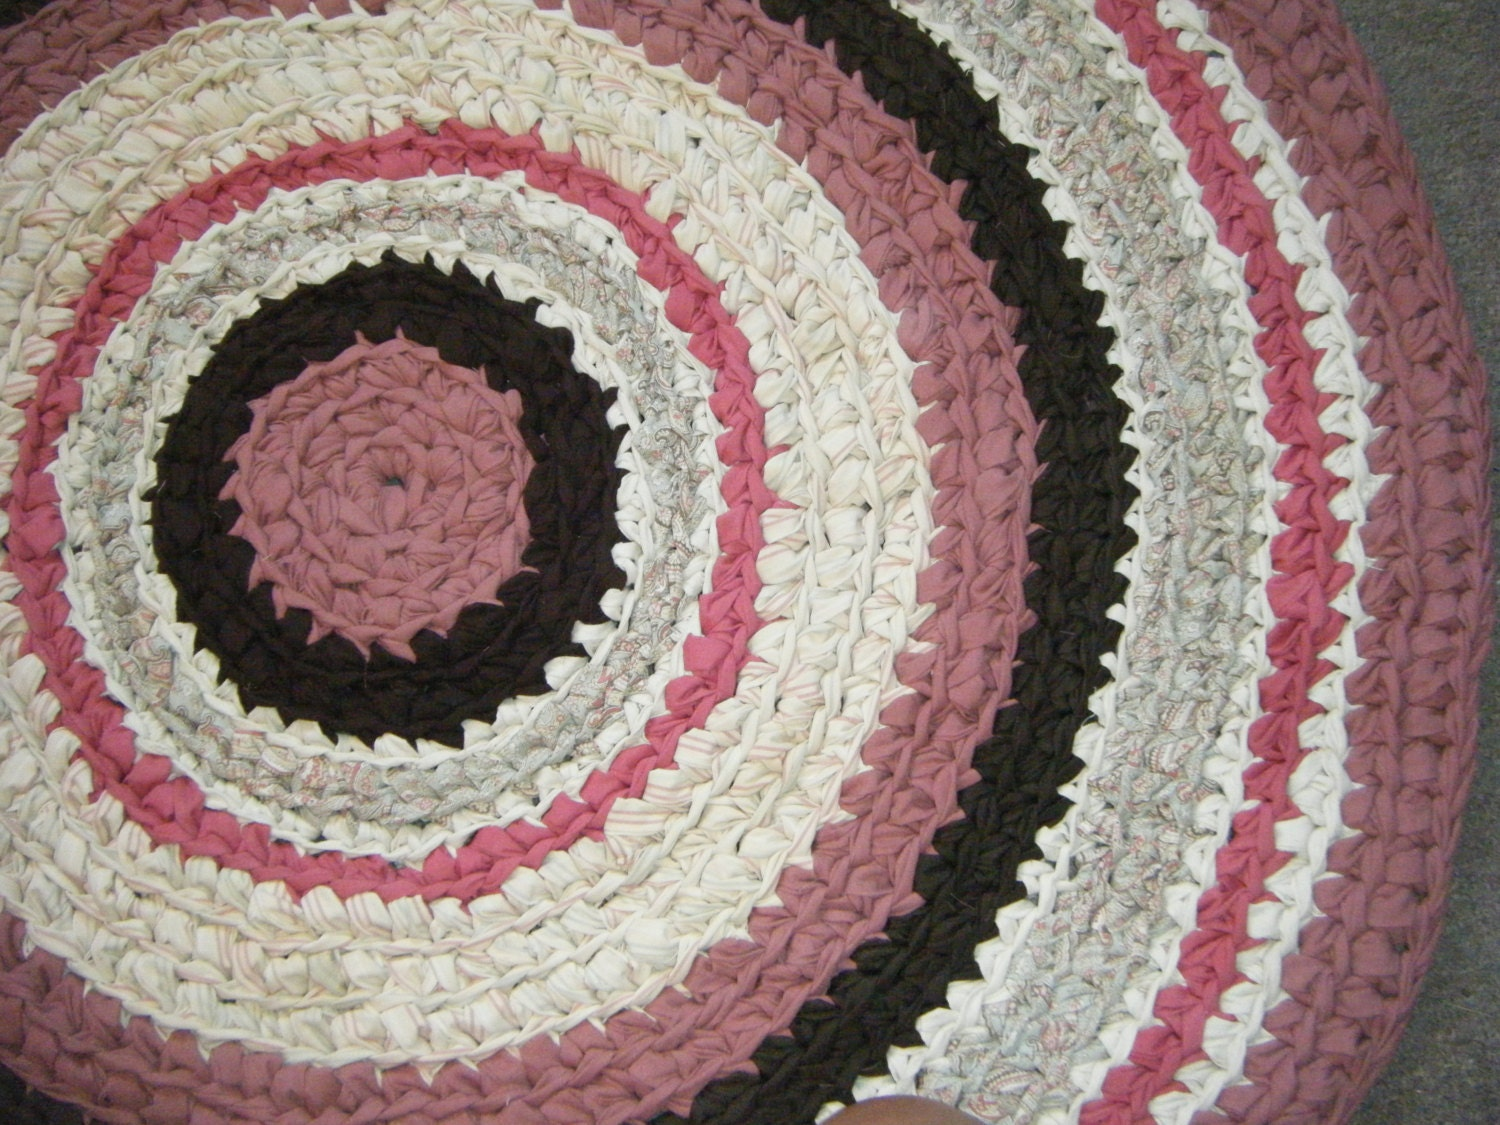 rose pink and brown 3 feet round area rug for etsy. Black Bedroom Furniture Sets. Home Design Ideas